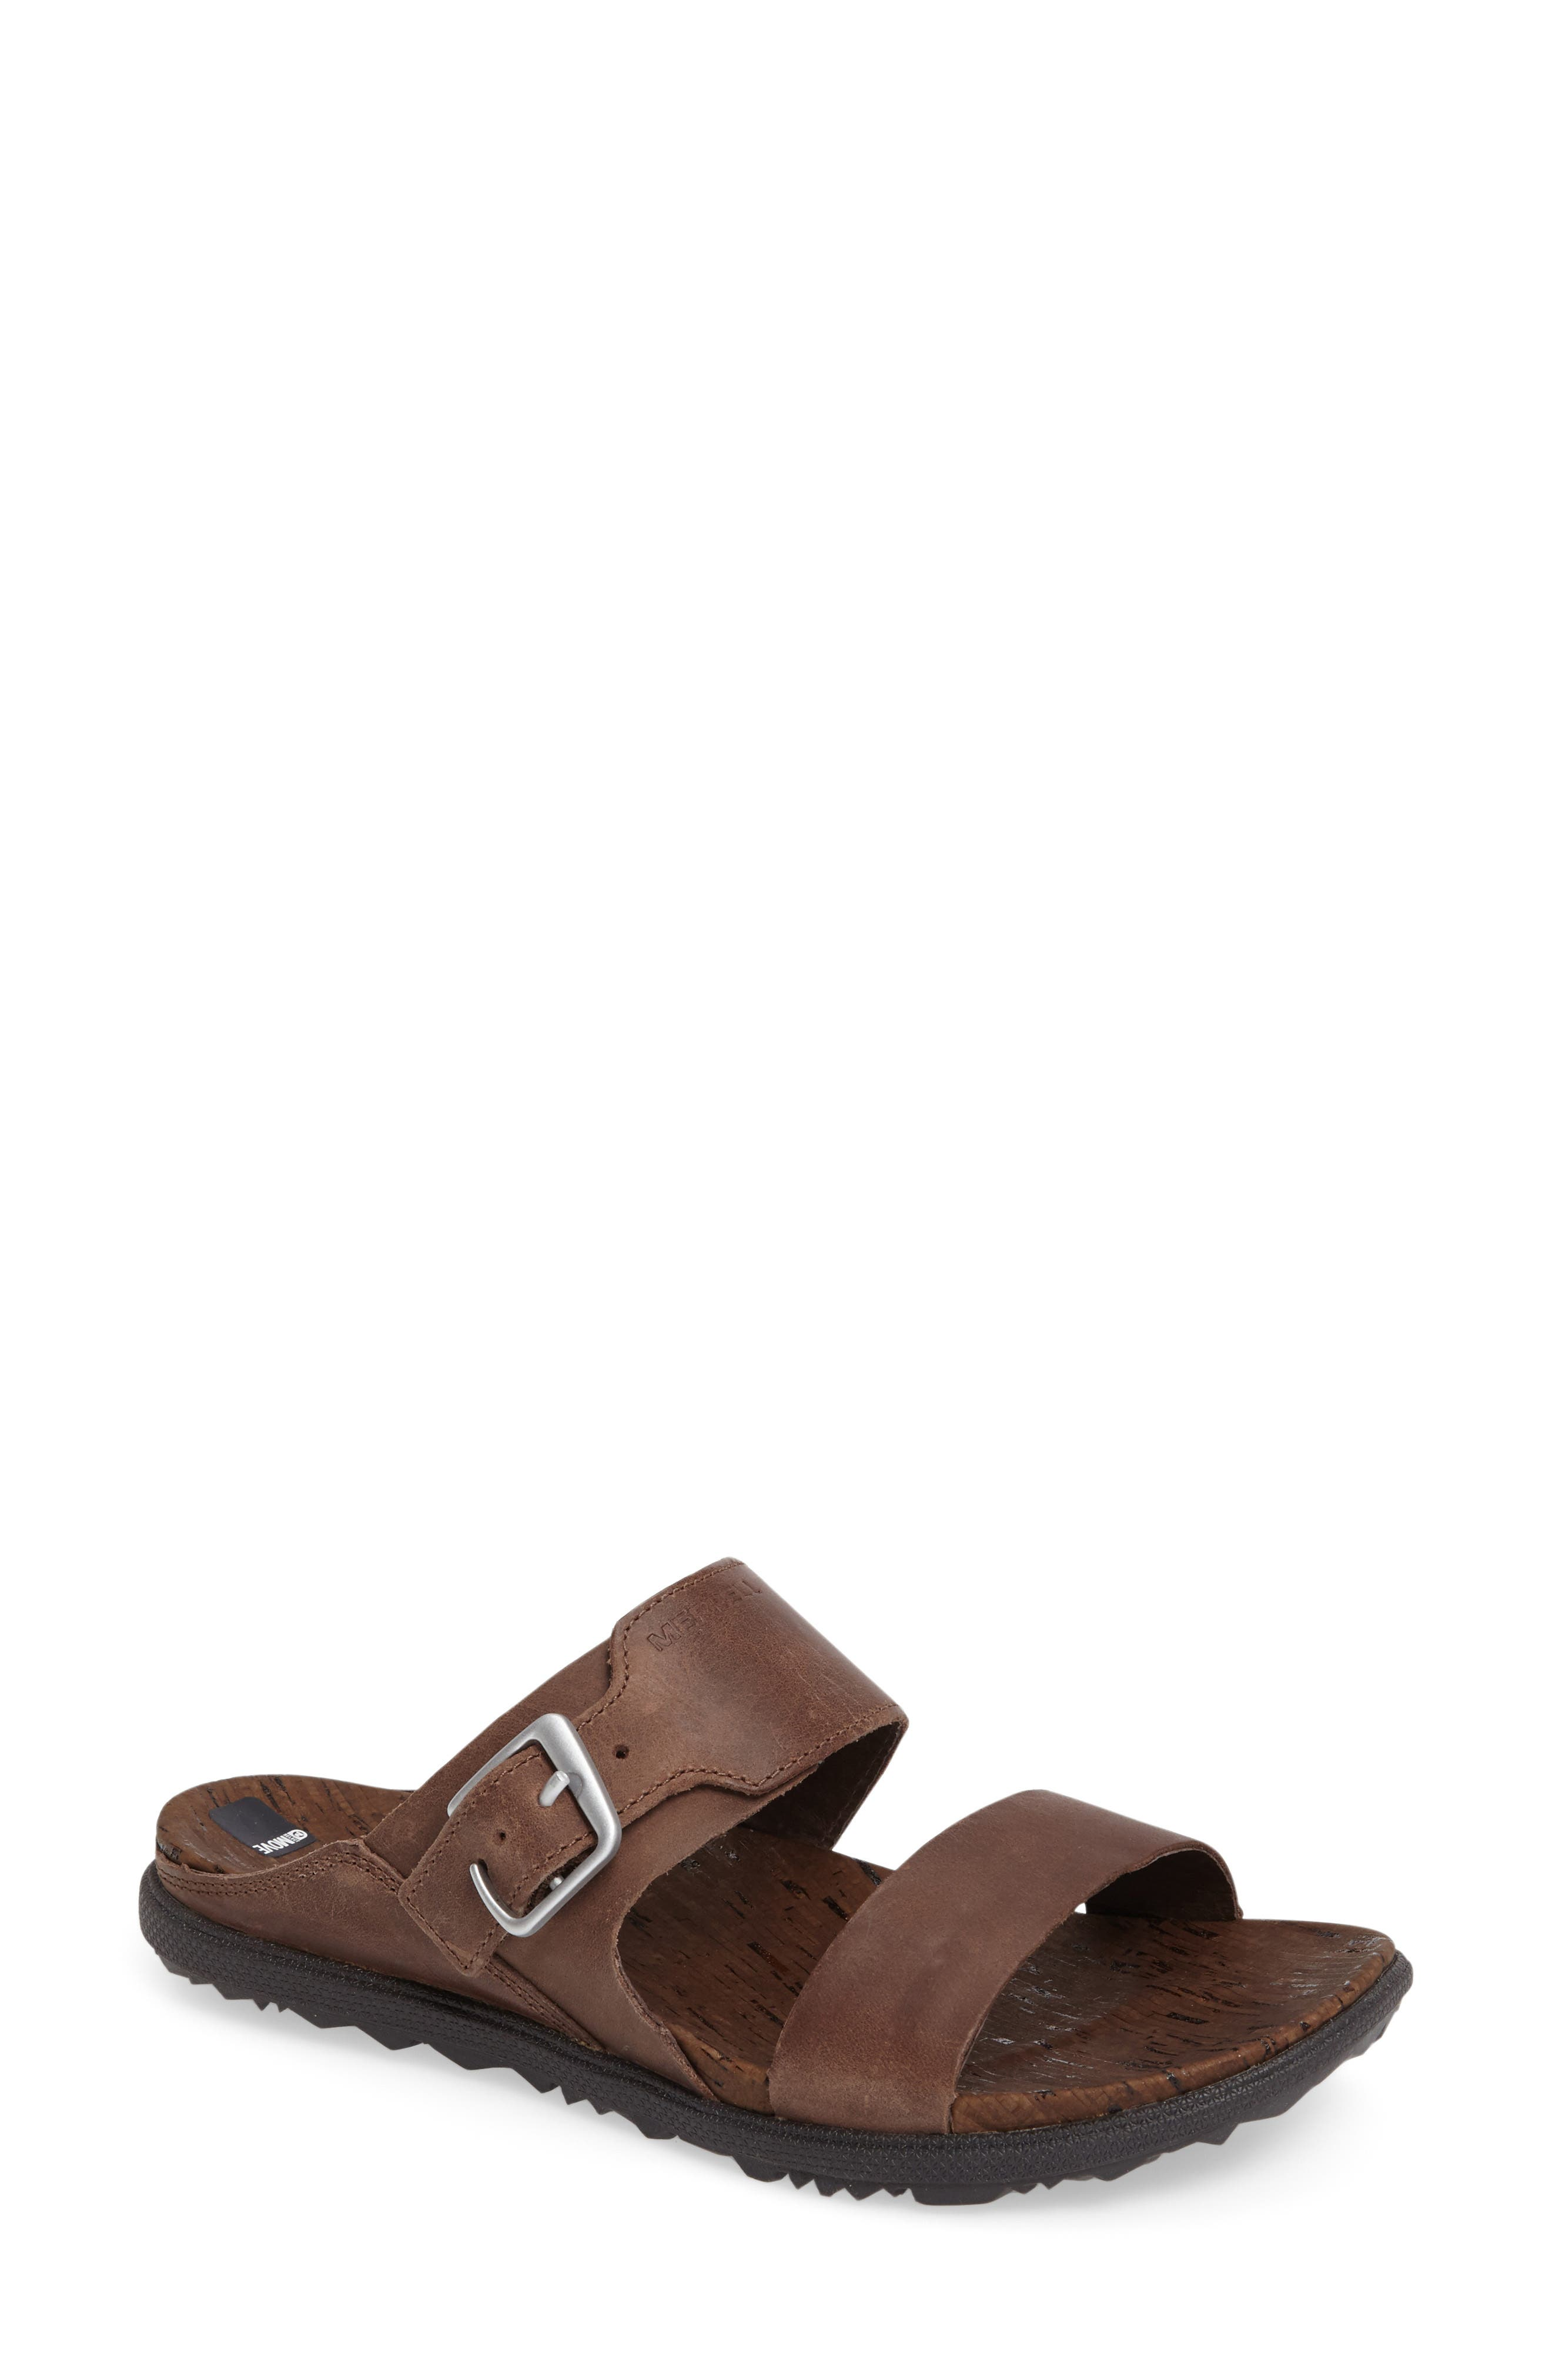 Around Town Slide Sandal,                             Main thumbnail 1, color,                             Brown Leather